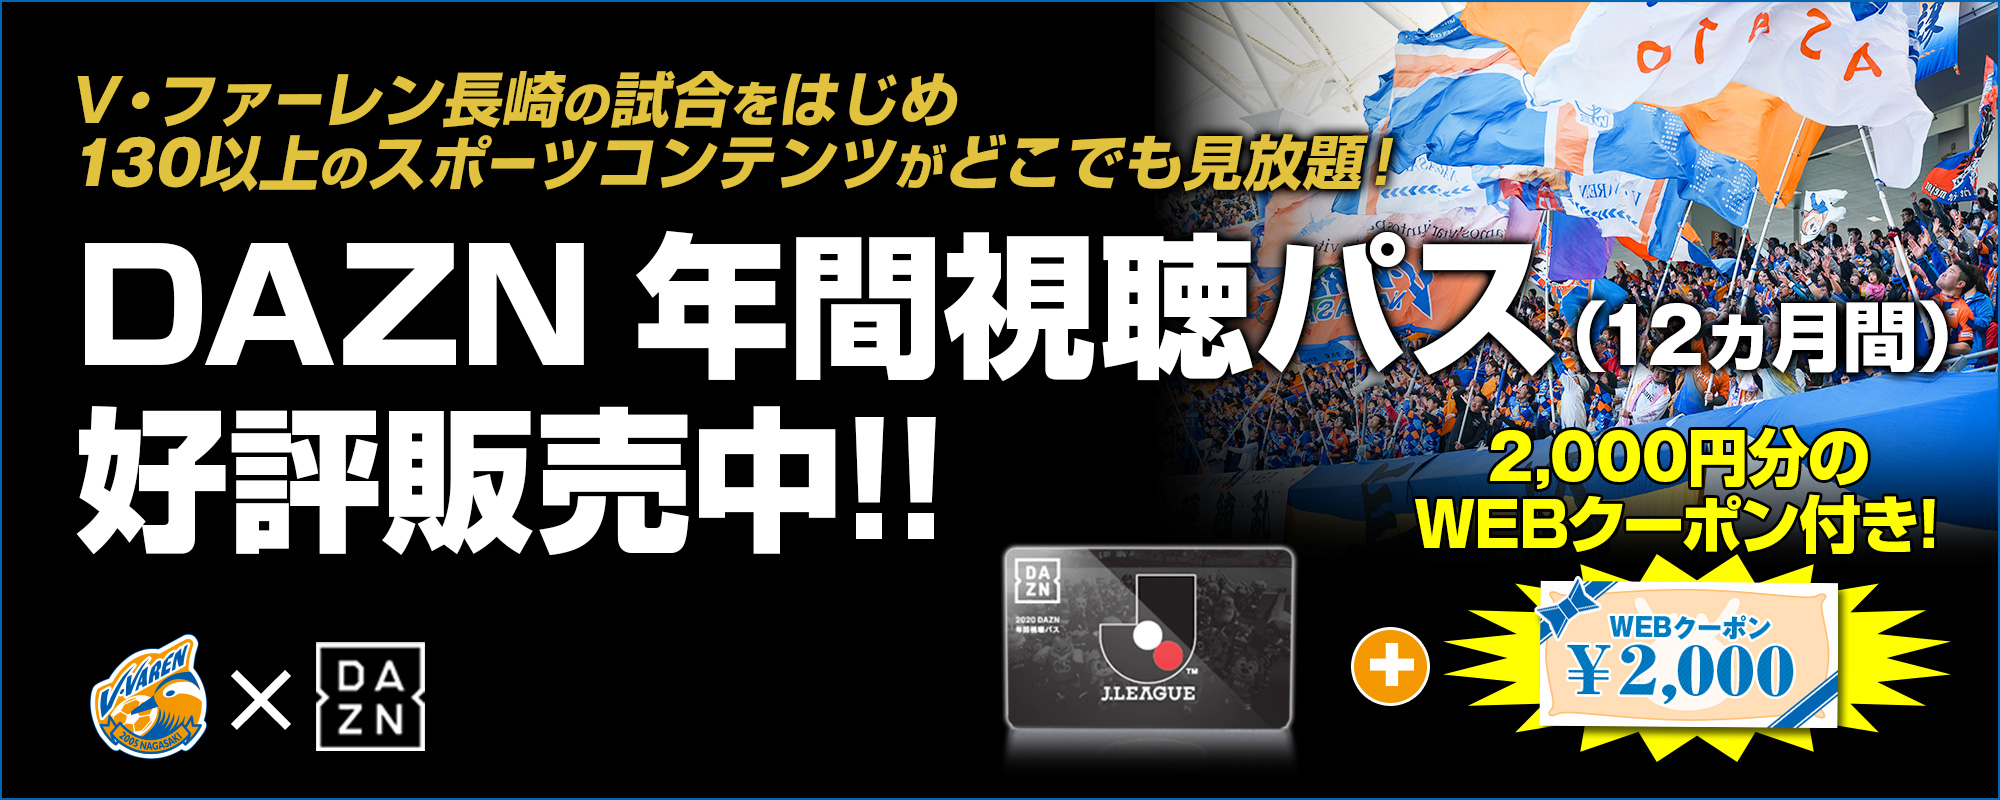 dazn_top サムネイル